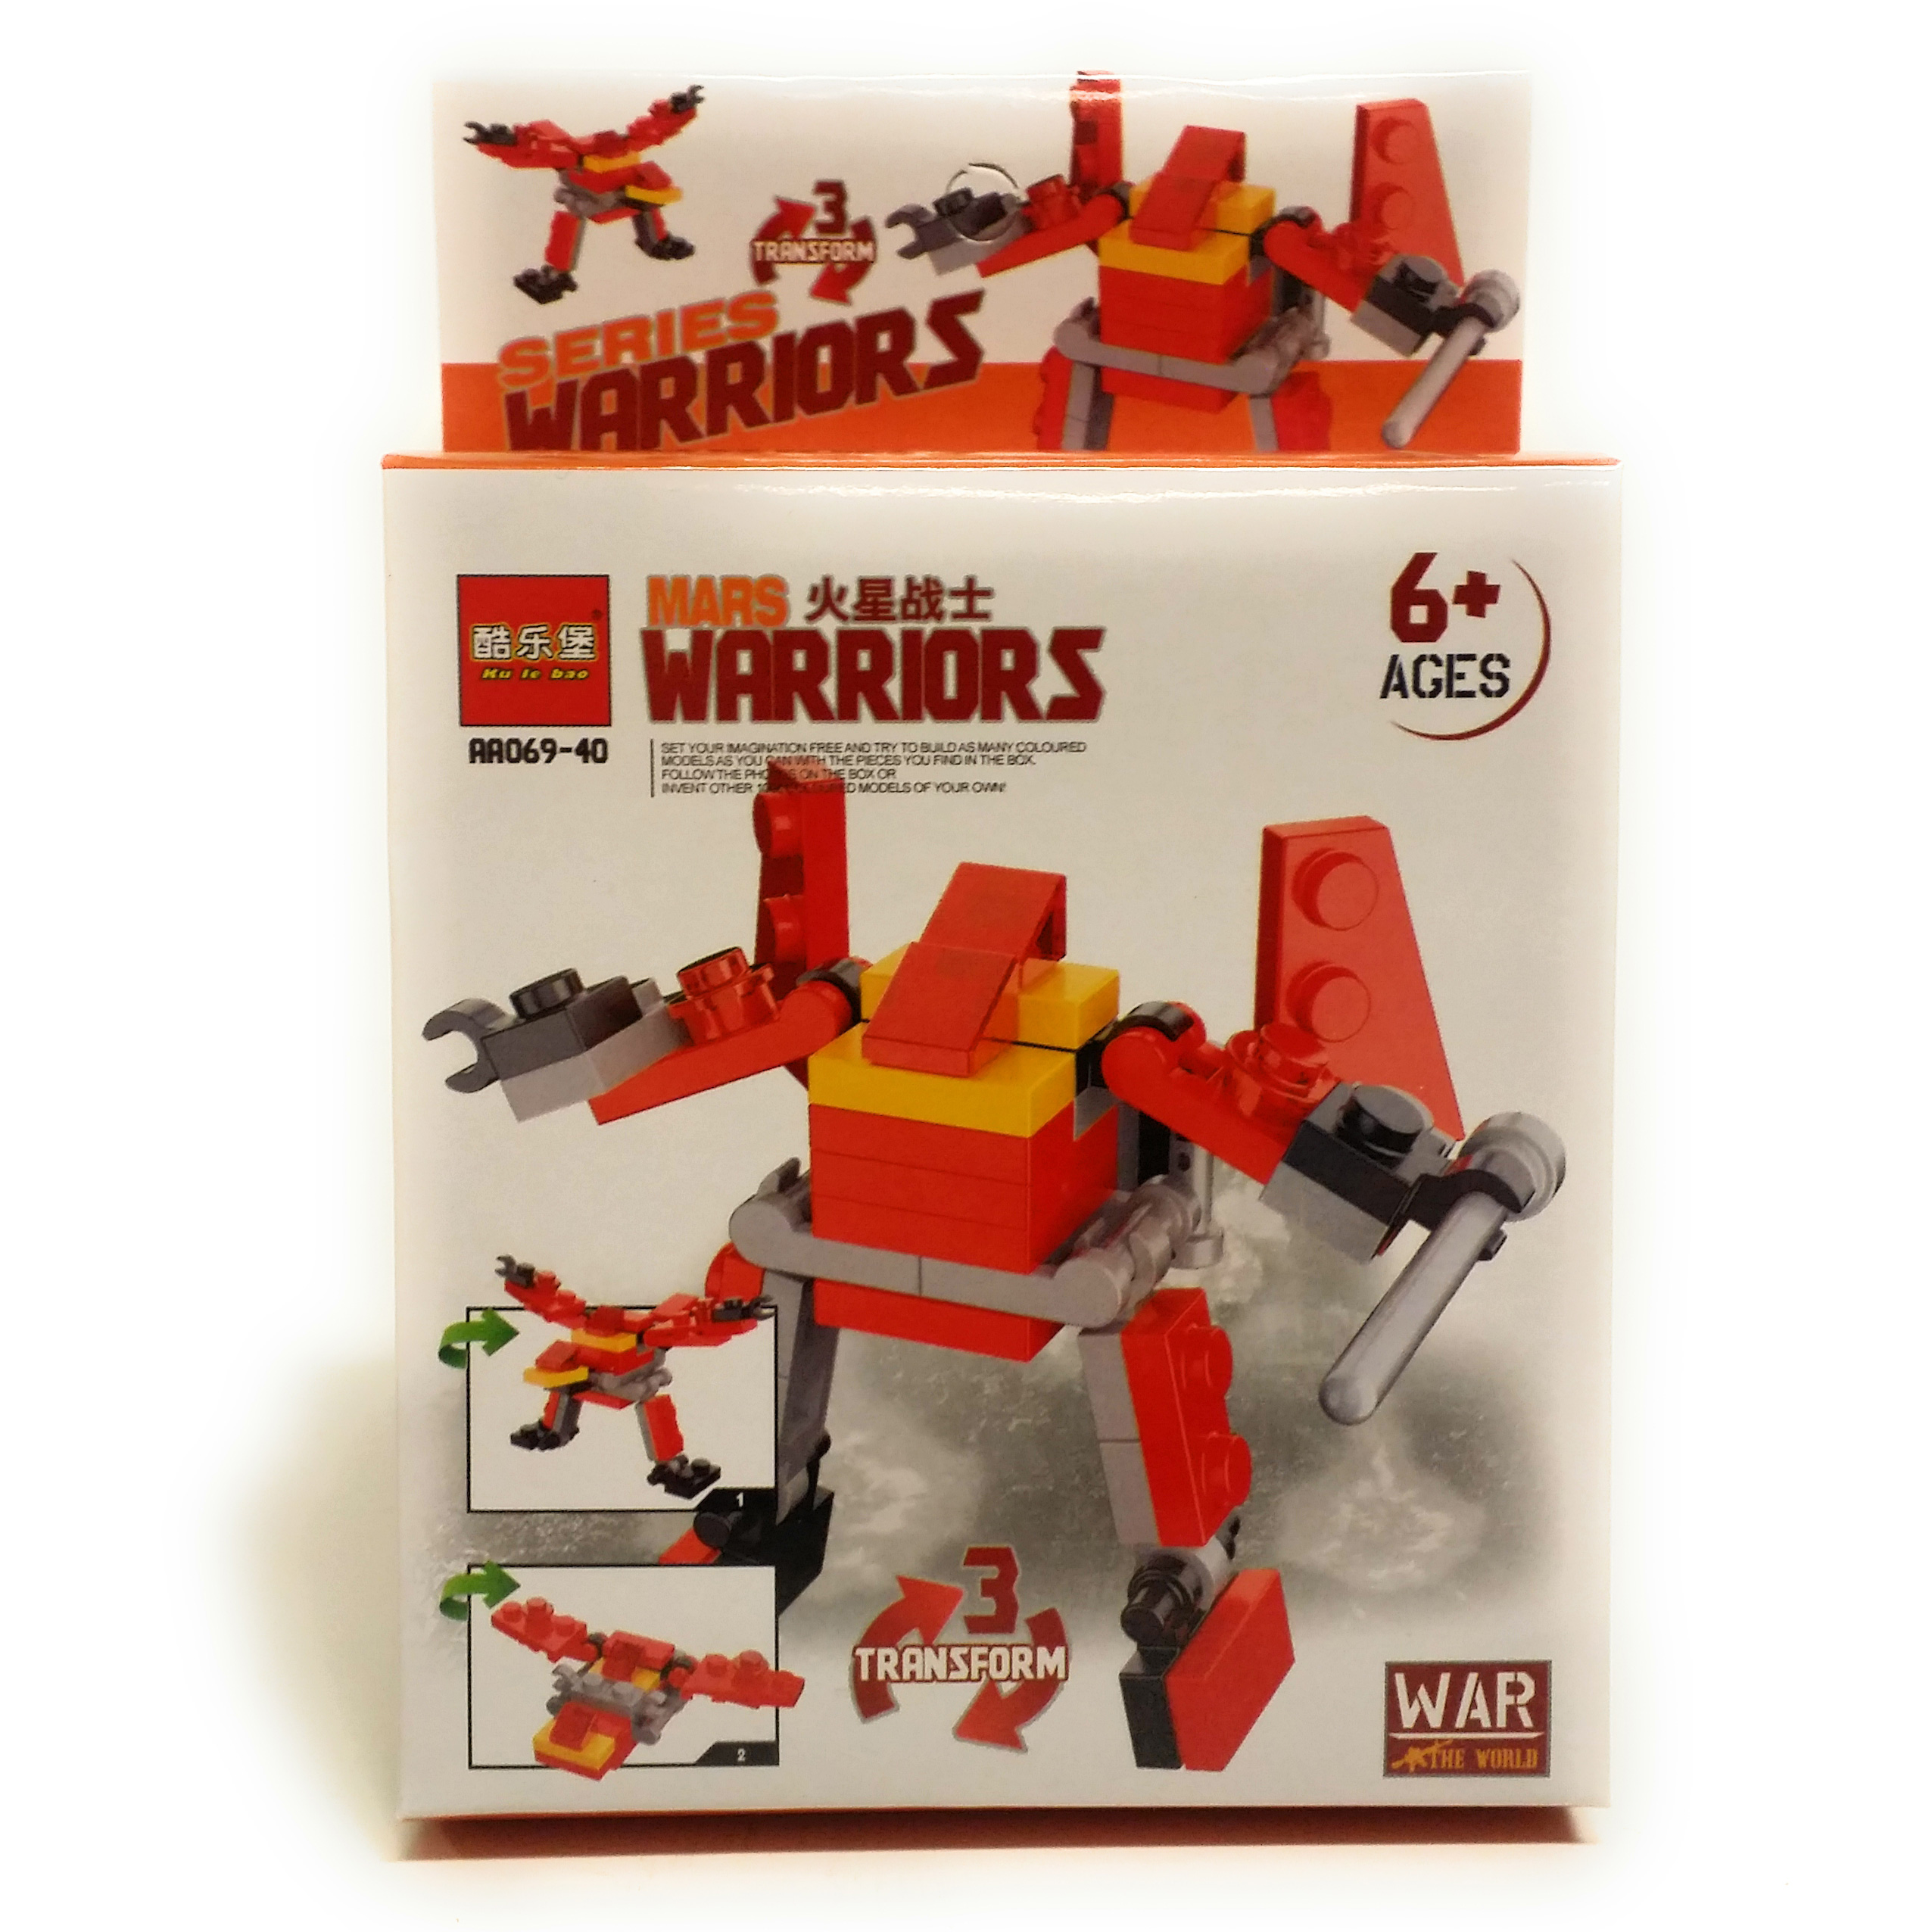 Science Fiction Army Mars Warriors 38 Pc Building Block Set, Green by Hayes Specialties